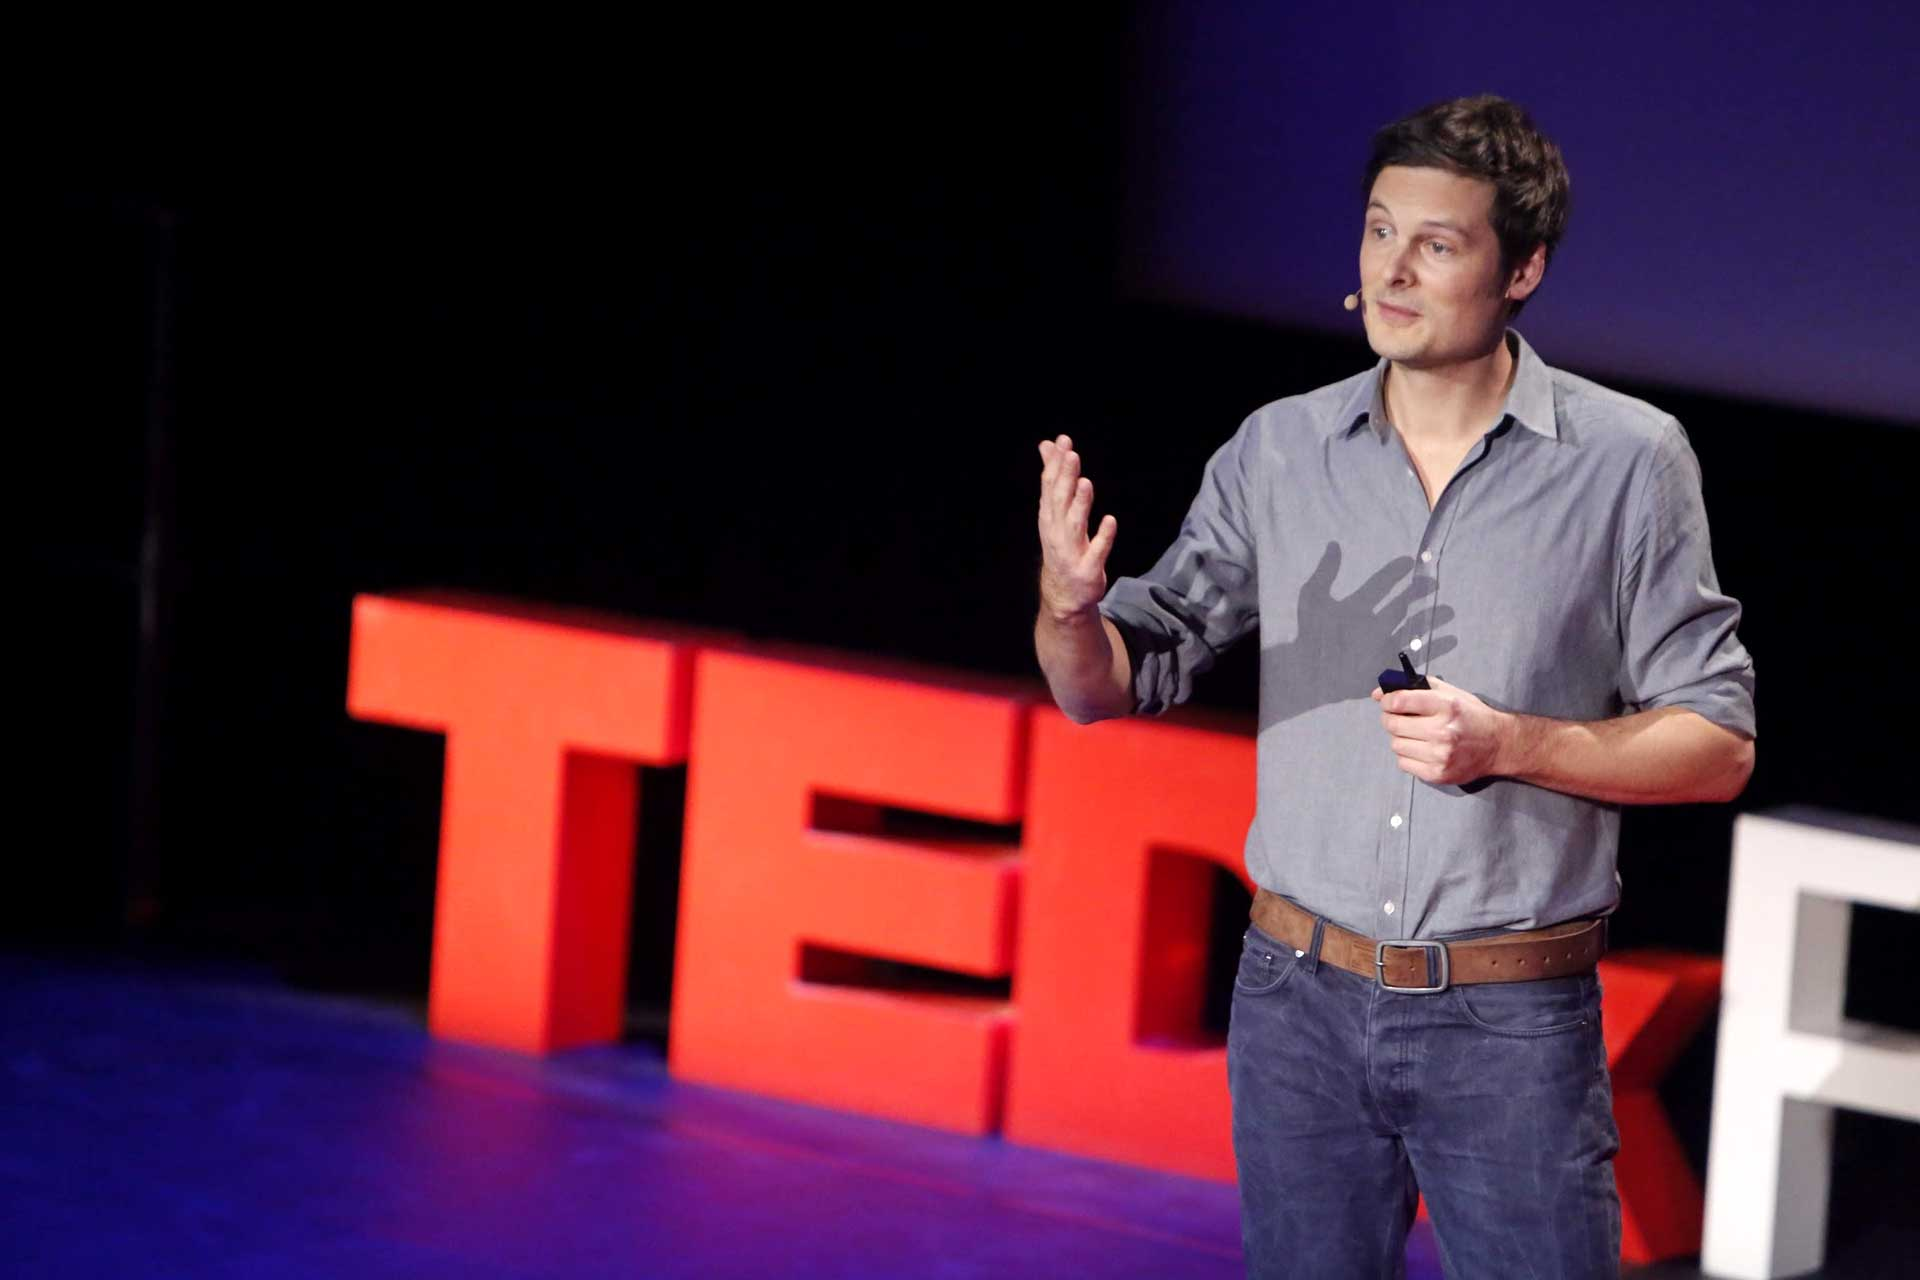 conference-TEDxParis-2013-16.jpg